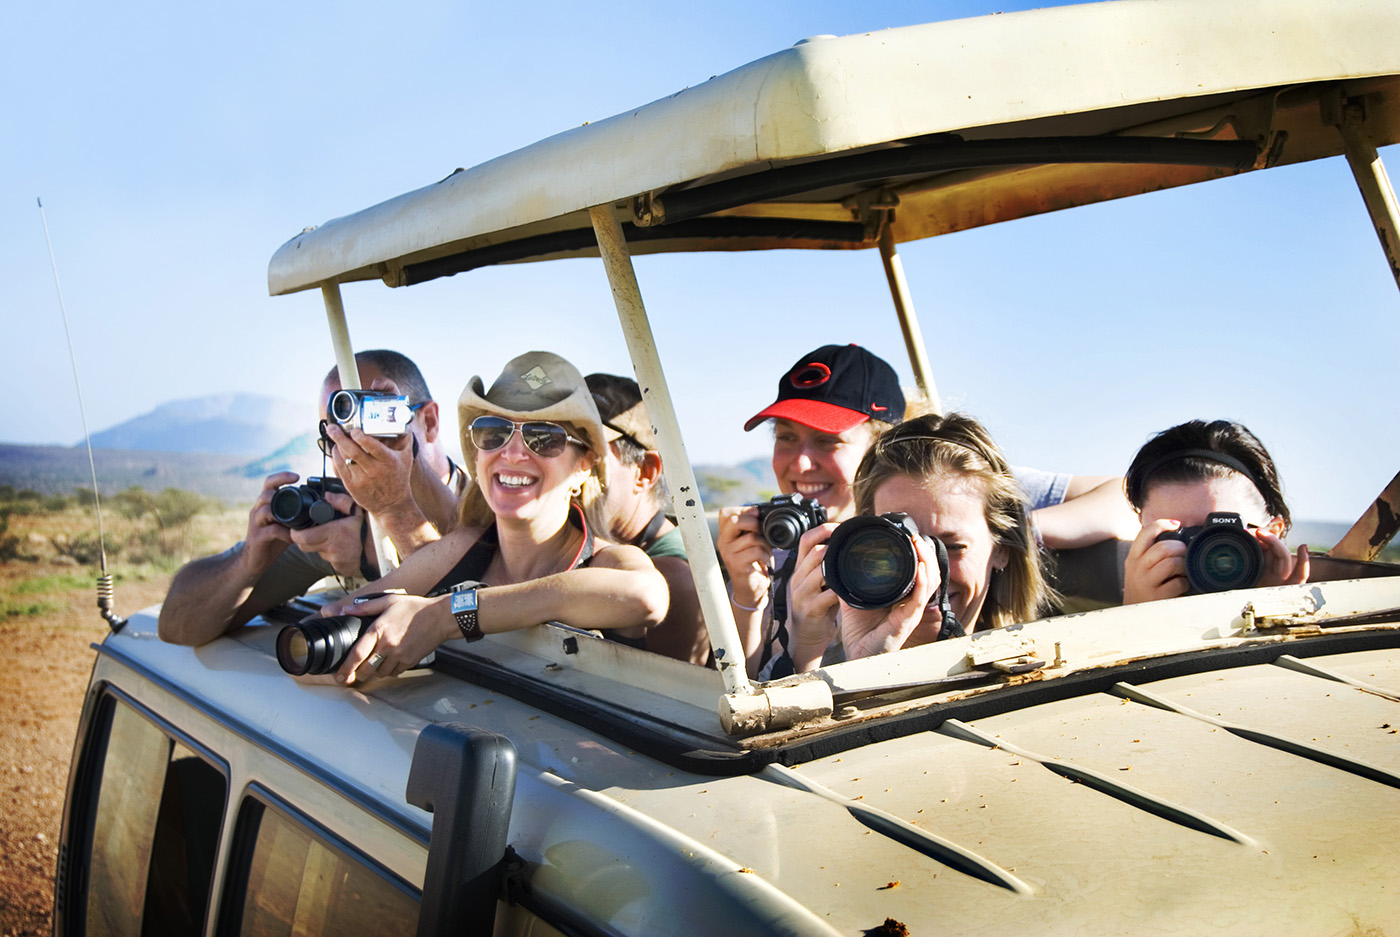 PhotoFly Travel Club | TOP PAGE MAIN PICTURE OPTION 1 lovin safari sky | PhotoFly Travel Club